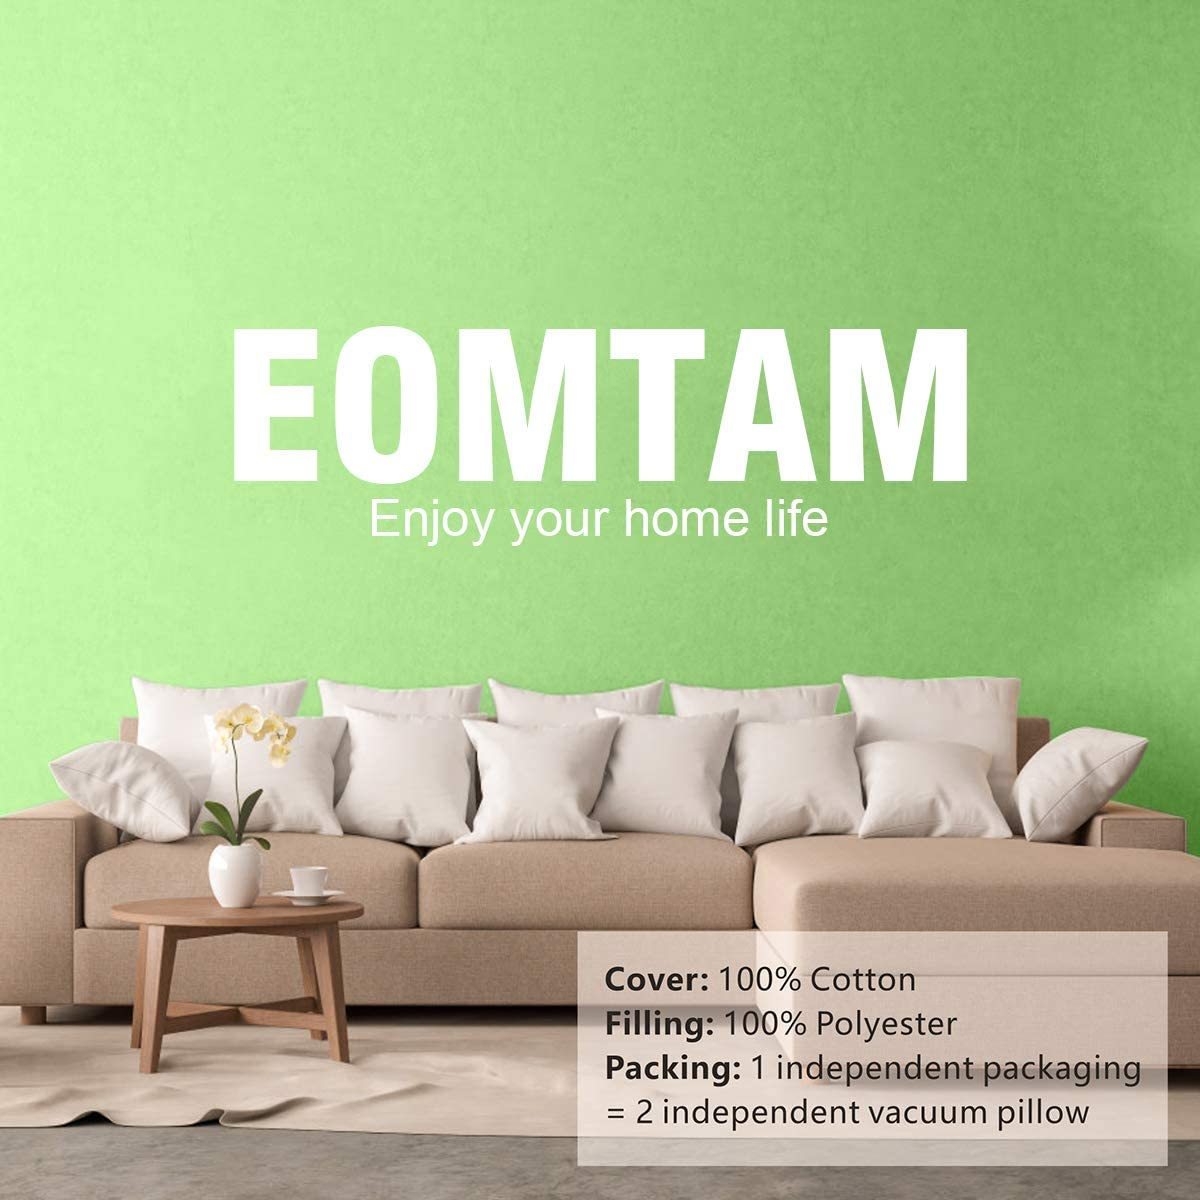 Set of 2 16x 16,2Pack EOMTAM 16x16 Pillow Inserts - Couch Pillows with 100/% Cotton Cover